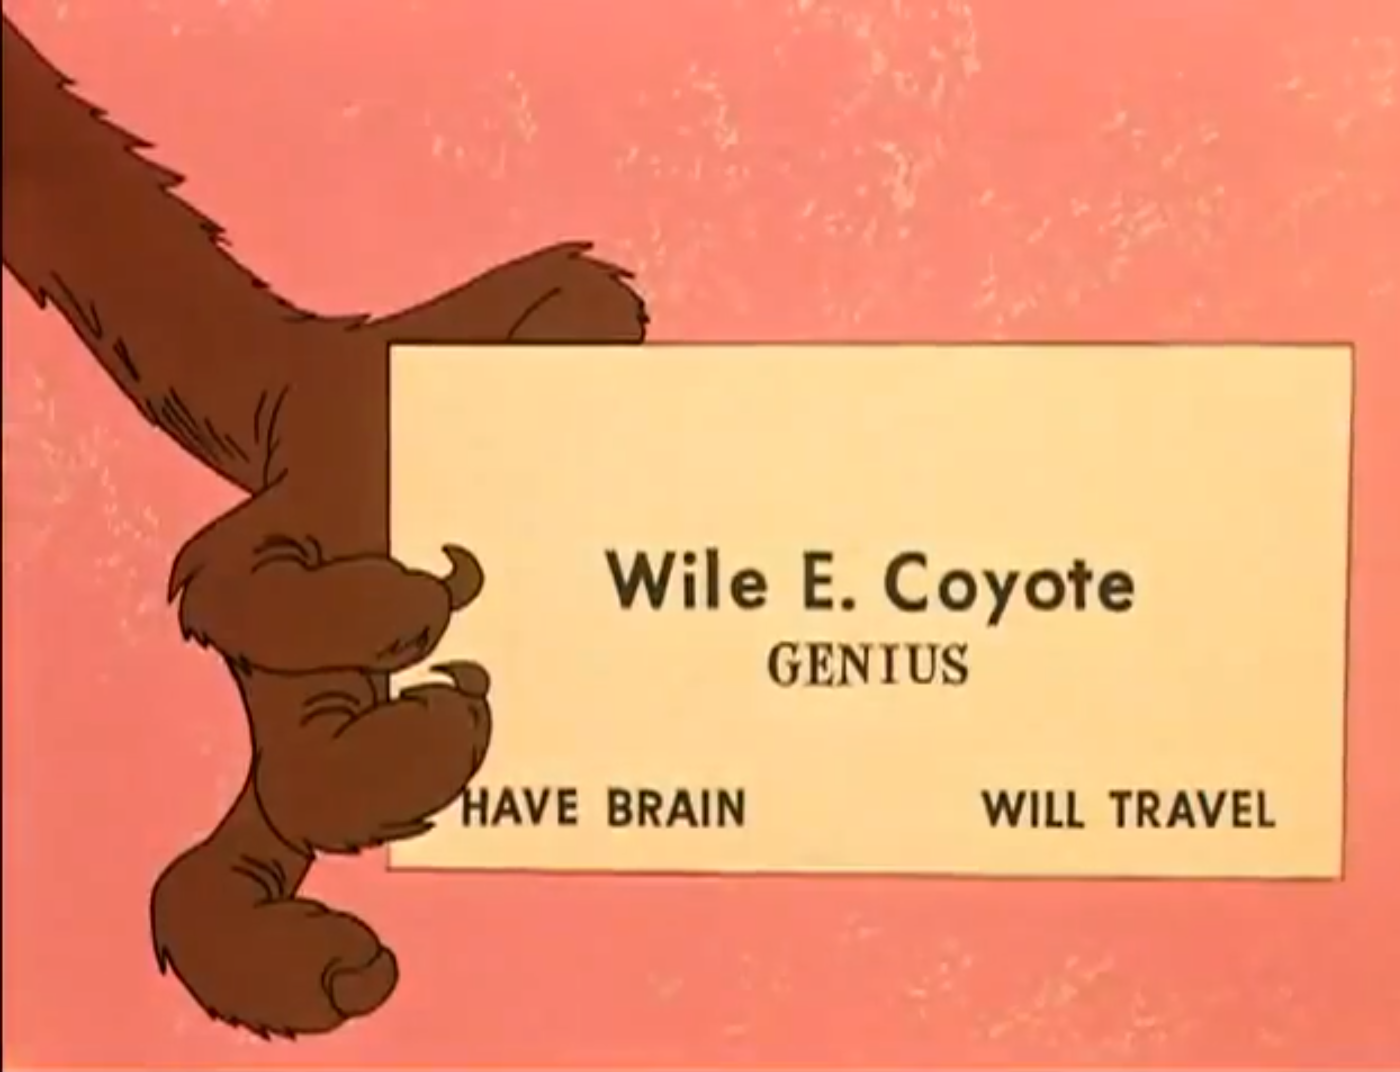 Wile E. Coyote - Genius - Have Brain, Will Travel